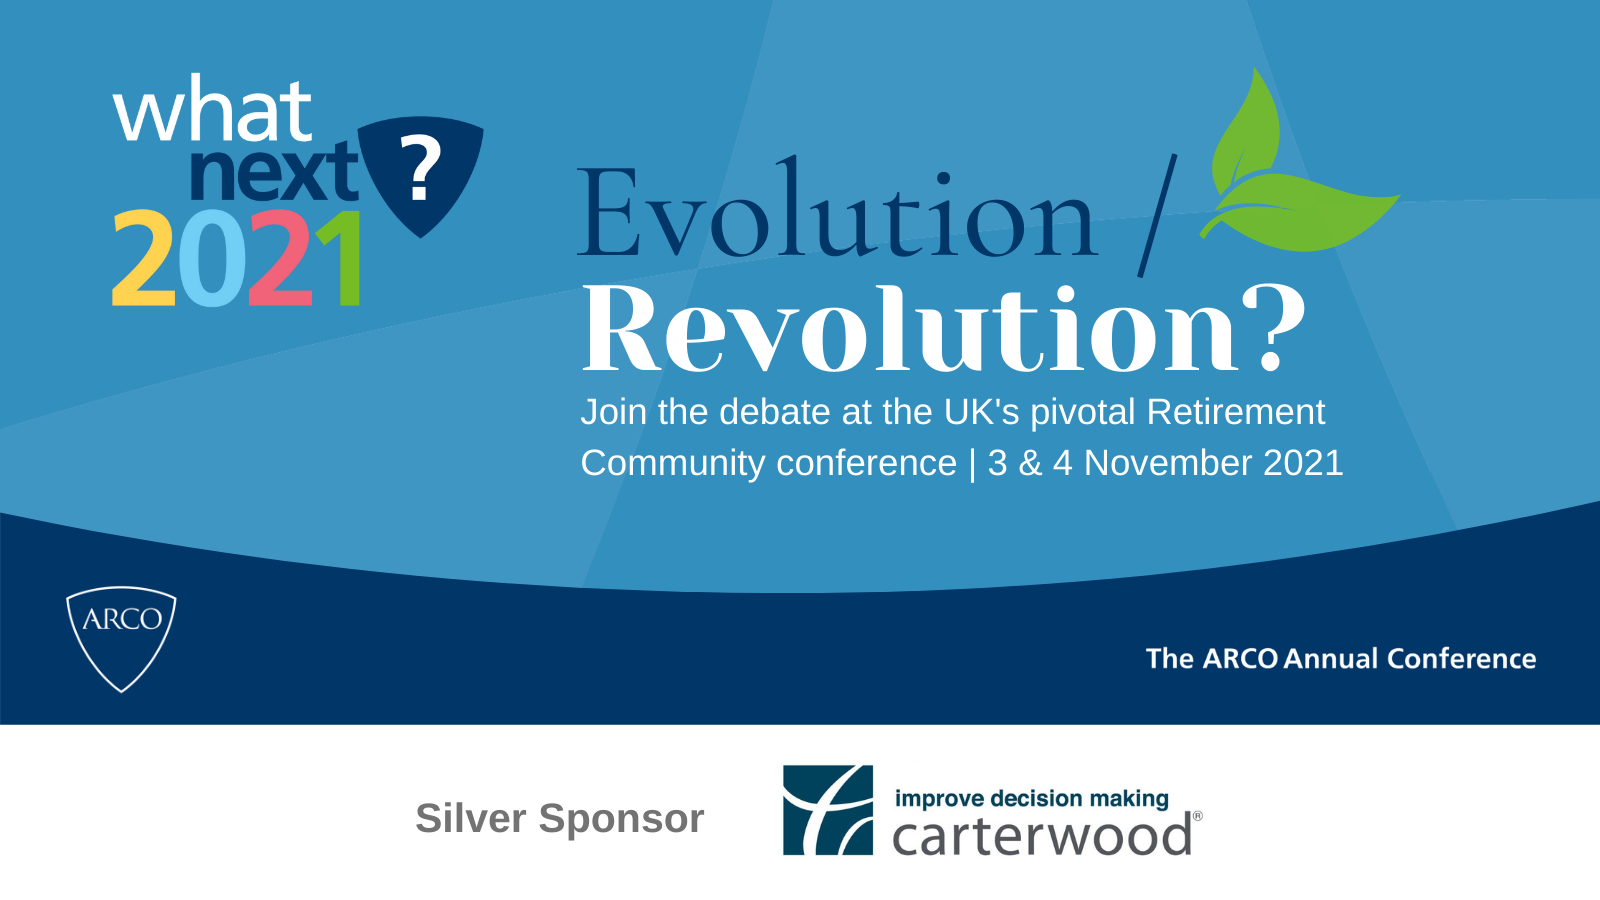 Carterwood sponsor ARCO Annual Conference 2021